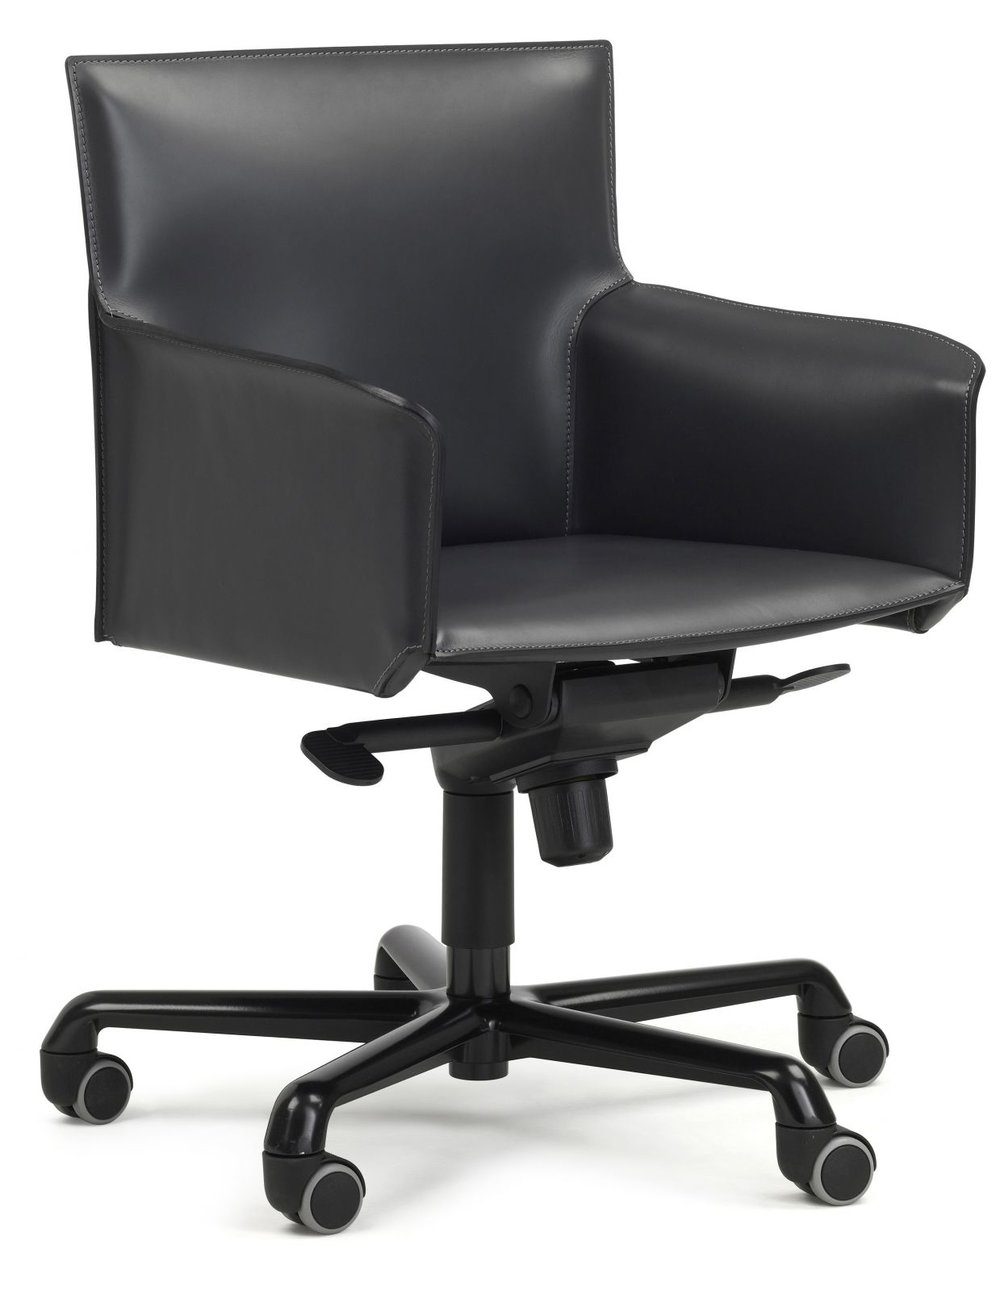 MOF 02 Modern Office Chair